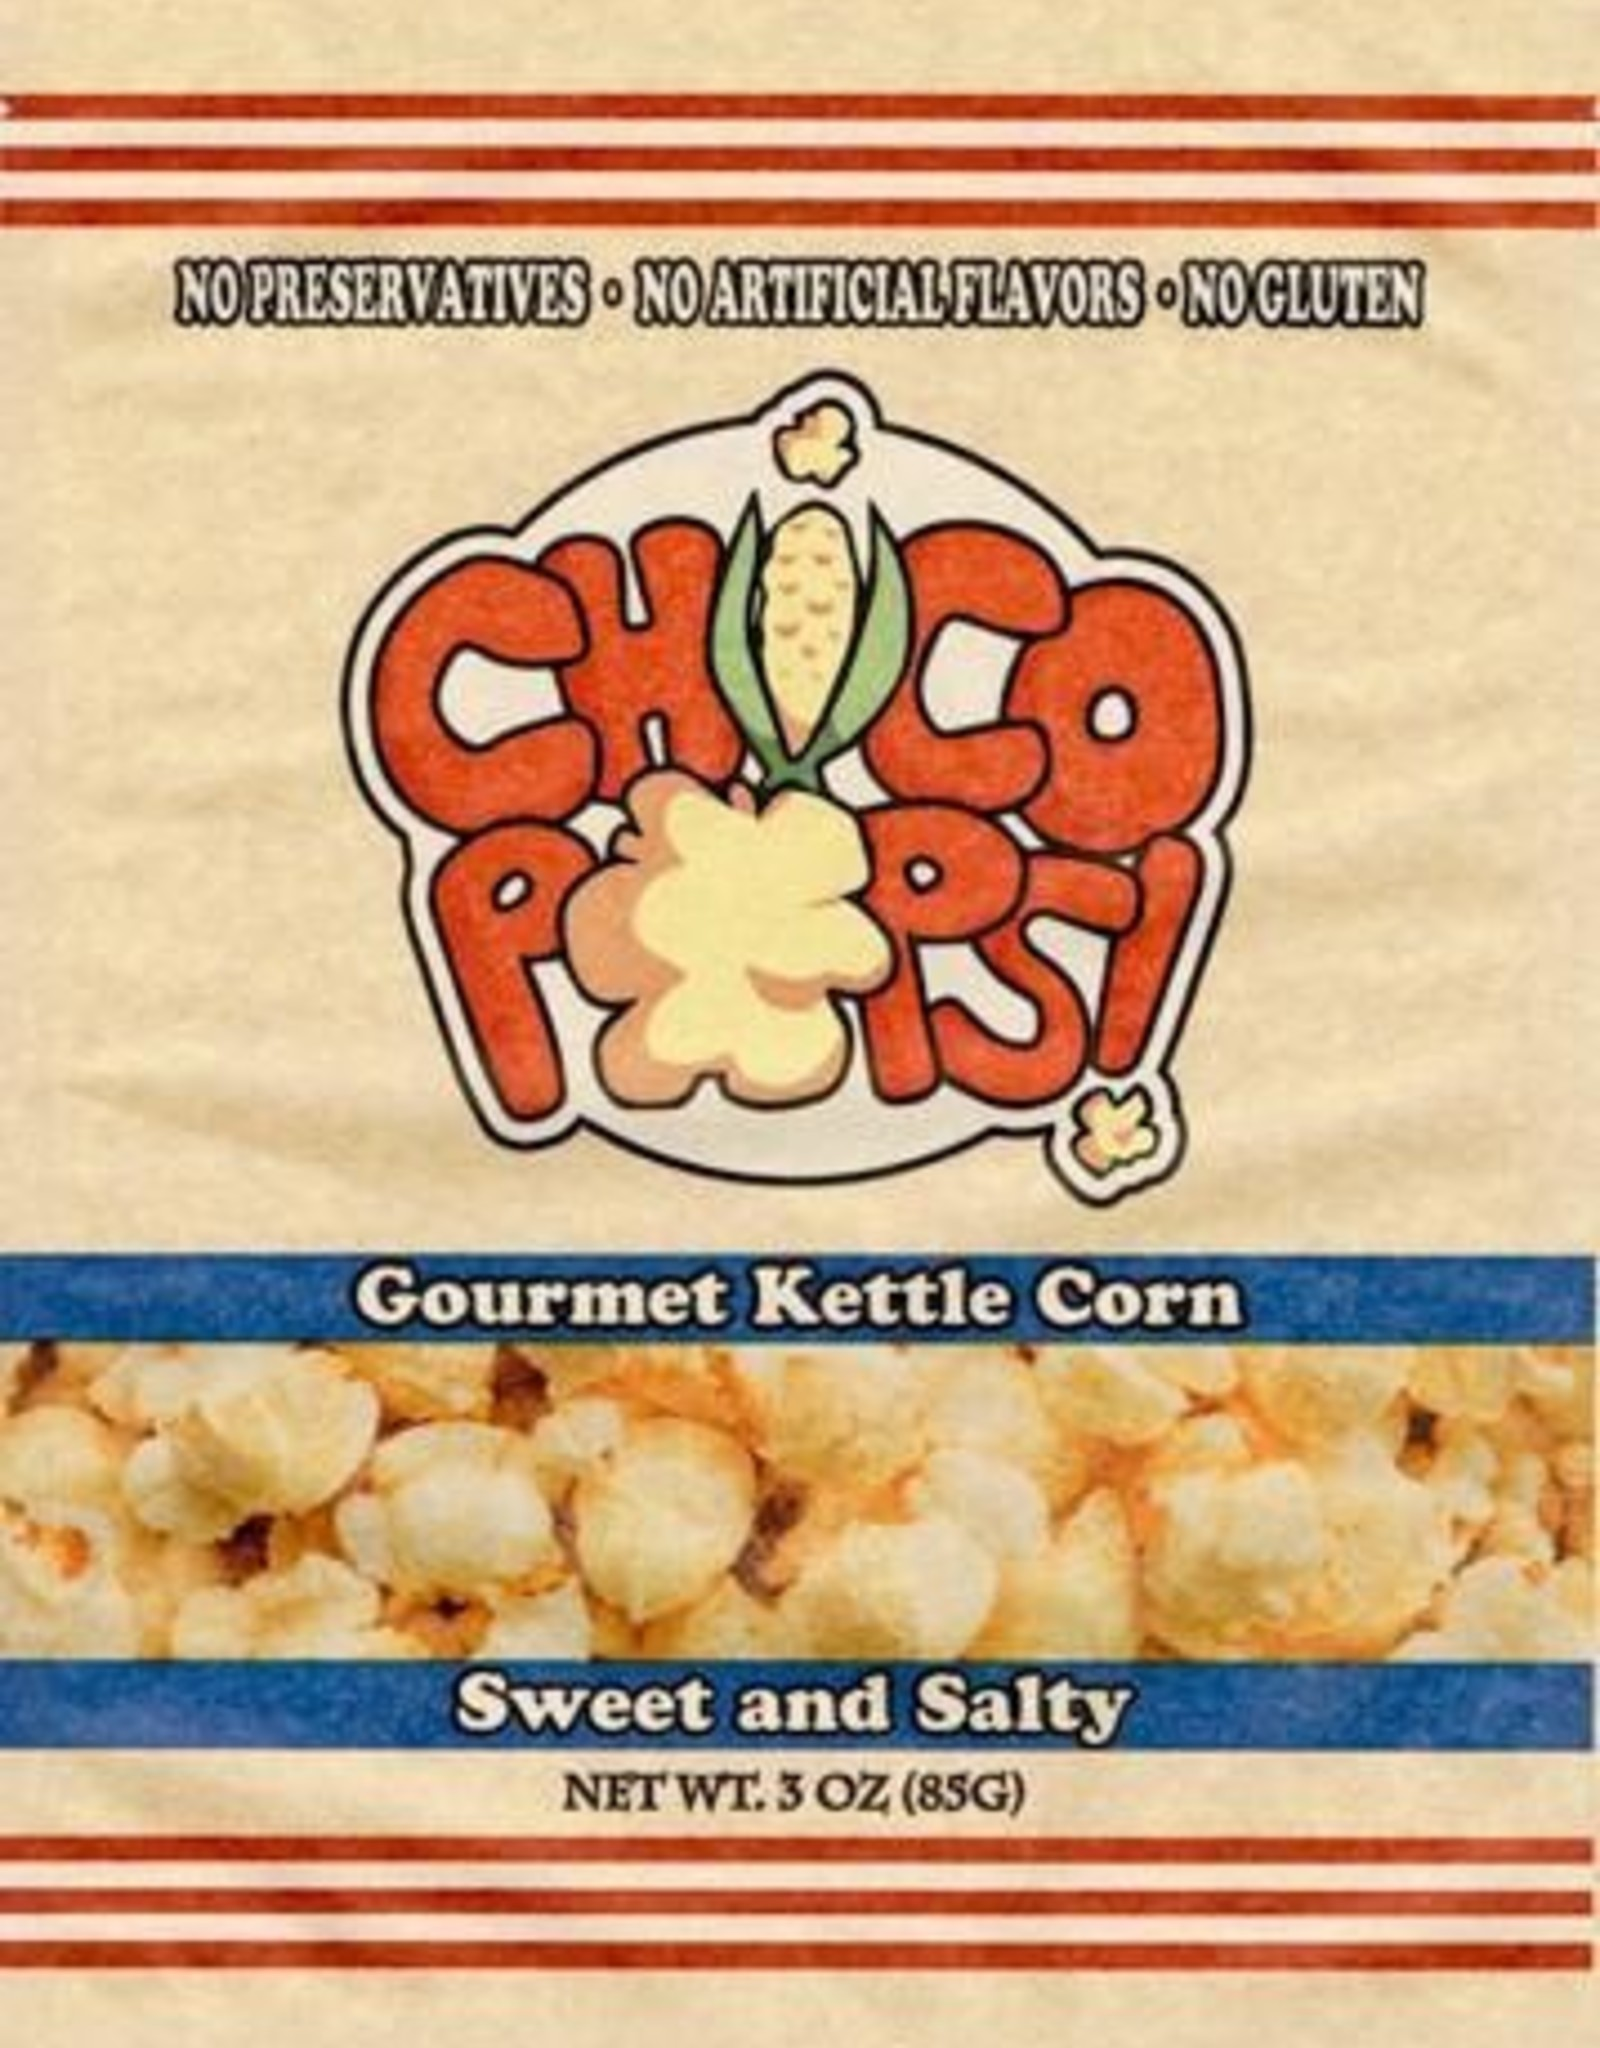 Chico Pops Gourment Kettle Corn Sweet and Saltey